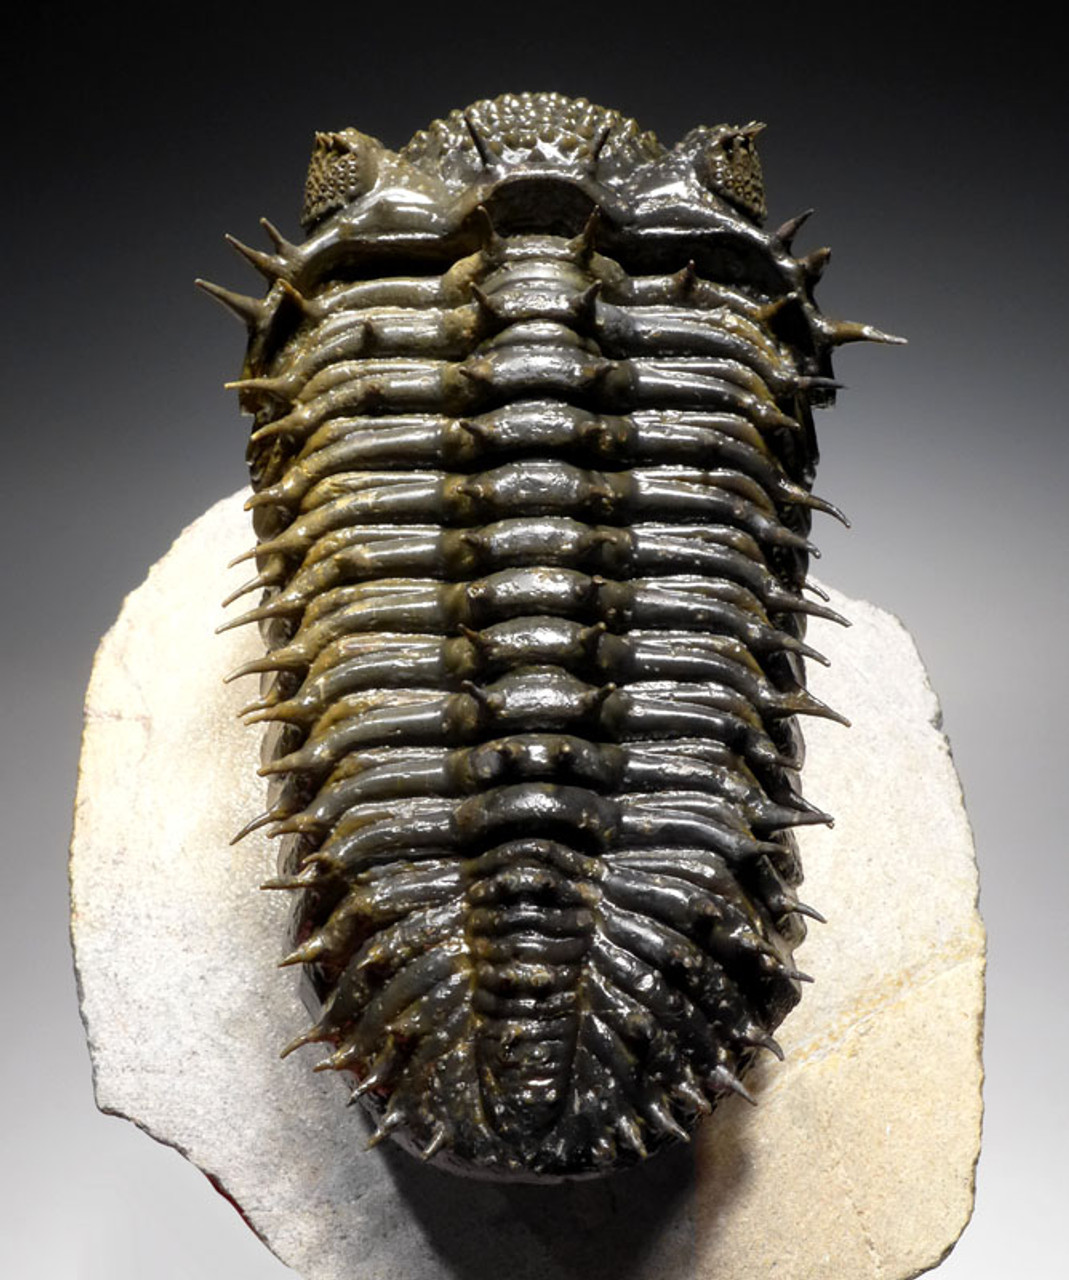 TRX323 - BI-COLORED FINEST GRADE GOLD AND BLACK SPINY DROTOPS ARMATUS TRILOBITE FOSSIL WITH FREE-STANDING SPINES